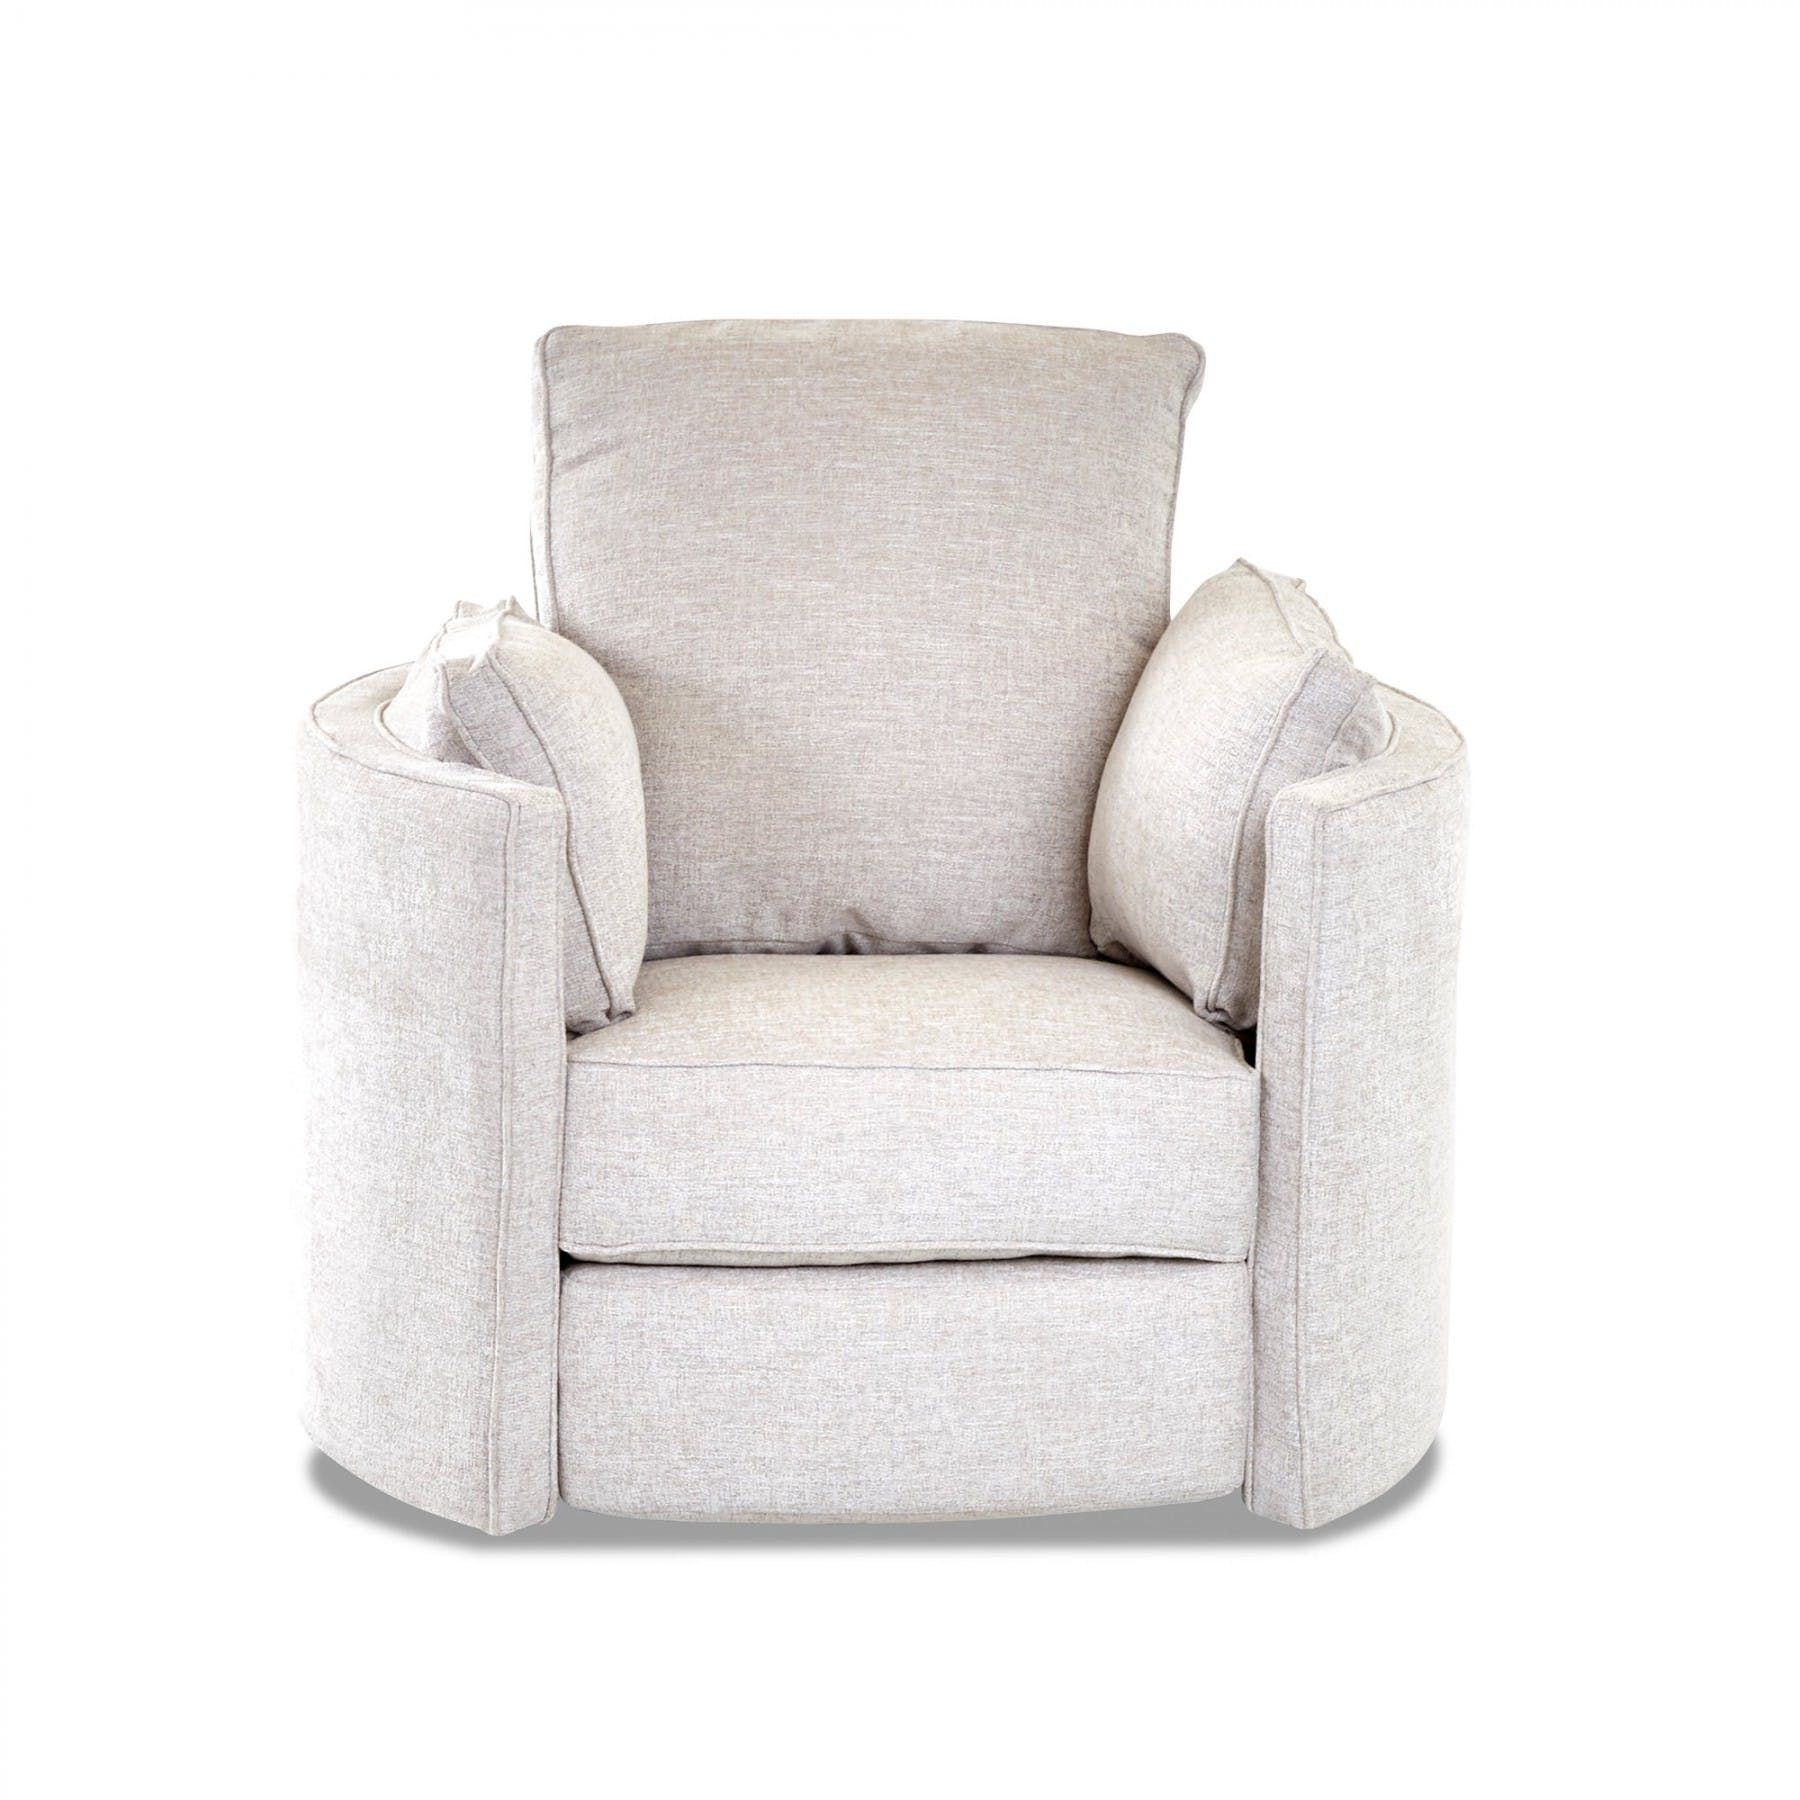 10+ Most Popular Swivel Recliners Chairs Living Room